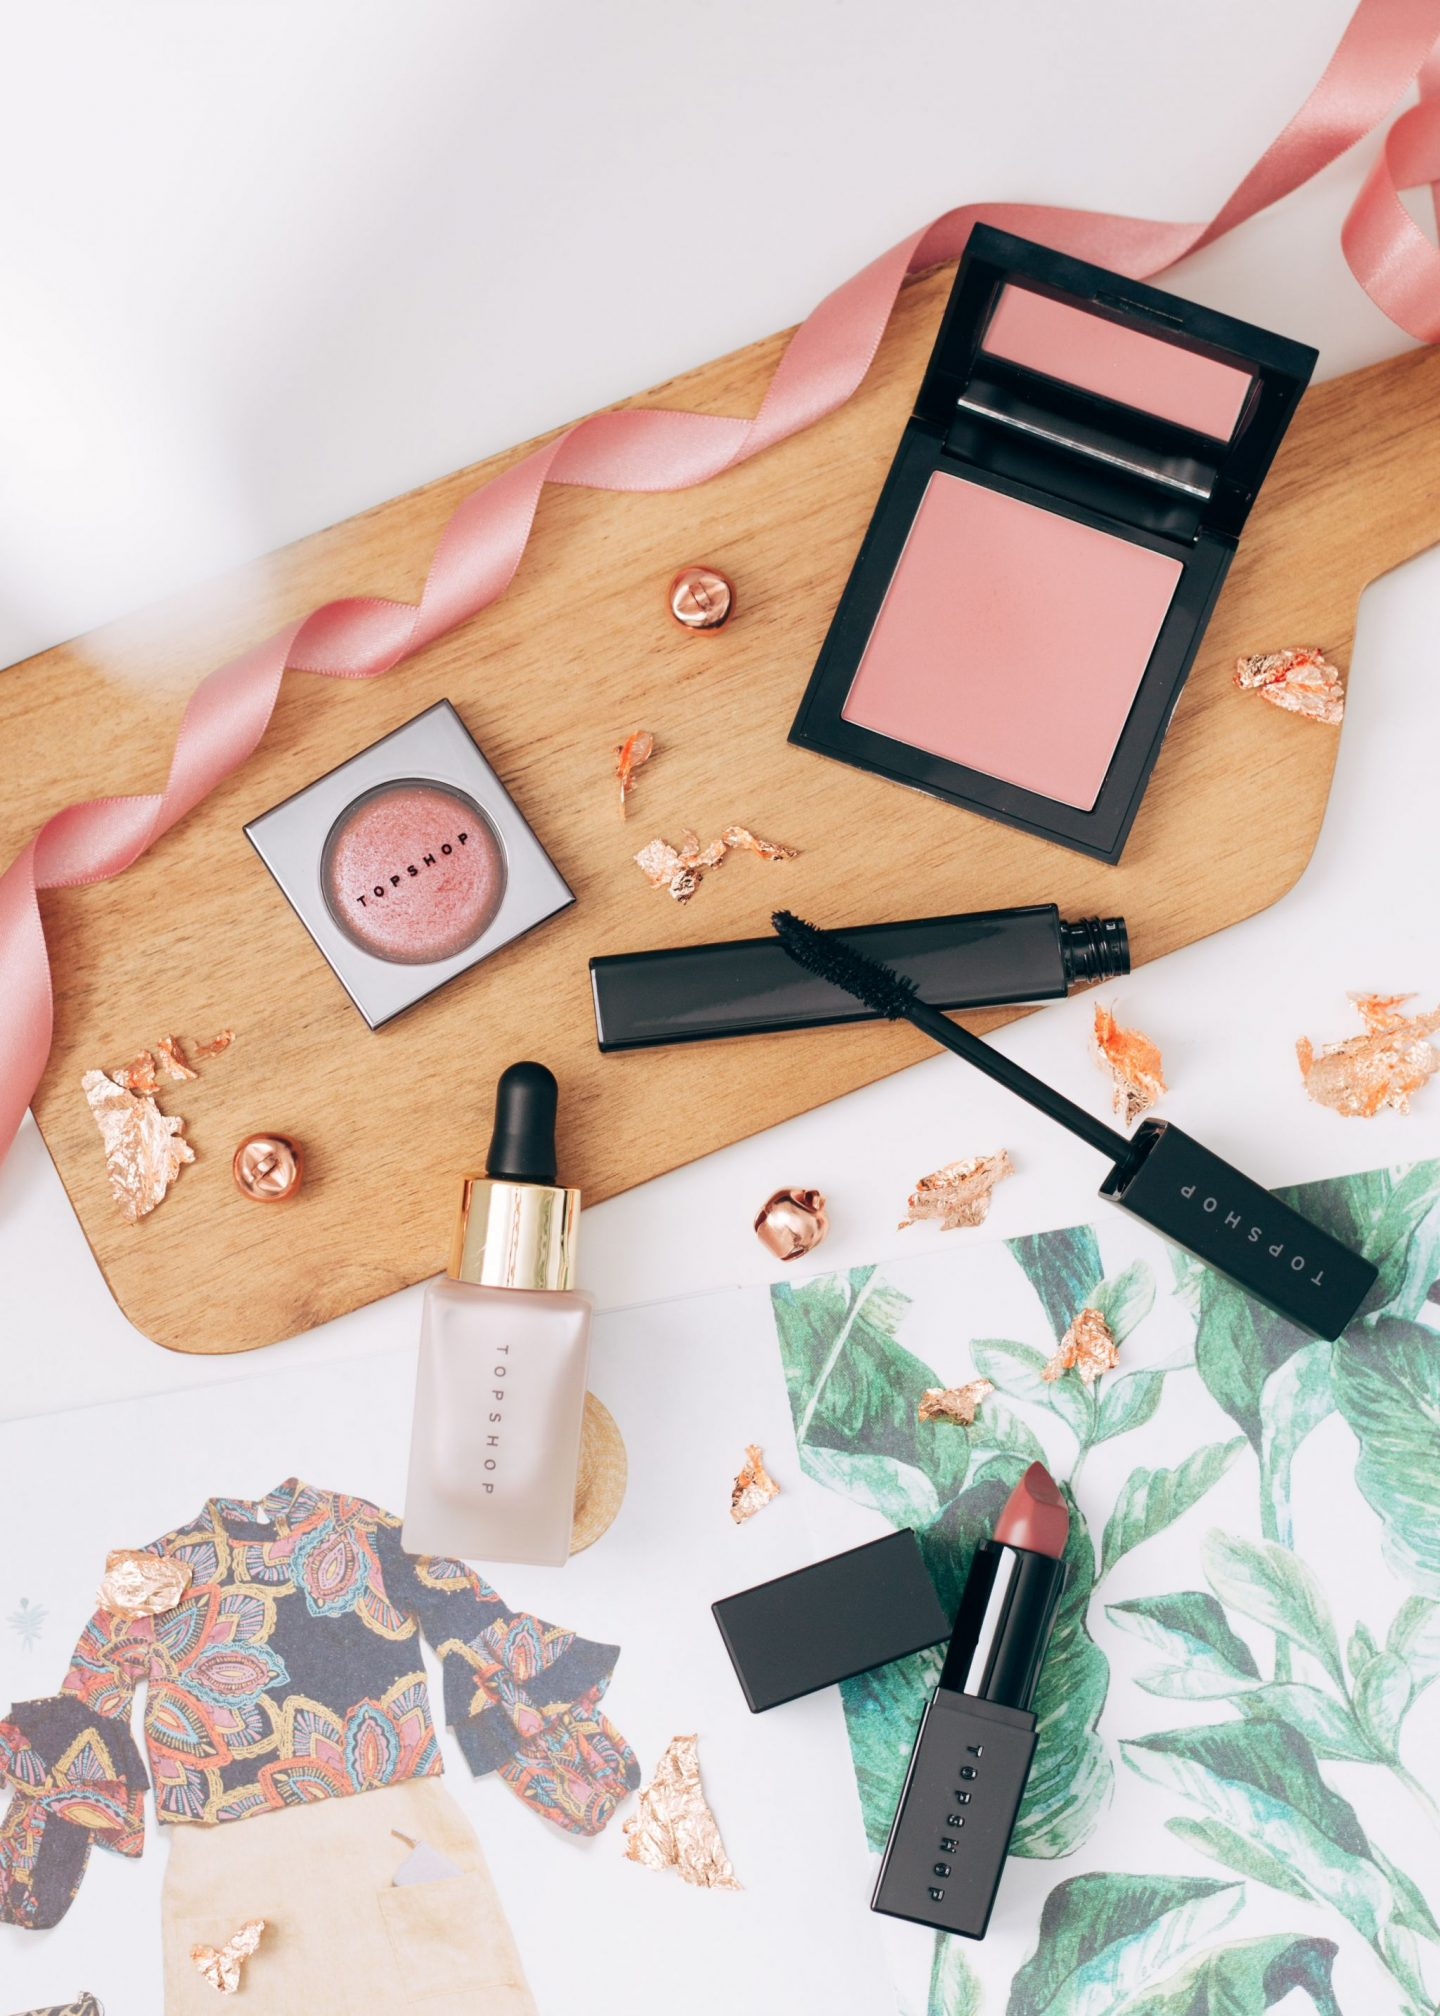 forever september, new and improved topshop beauty, beauty, lifestyle, chatty post, topshop, beauty range, blusher, mascara, highlighter, eyeshadow, lipstick, cream lipstick, high street